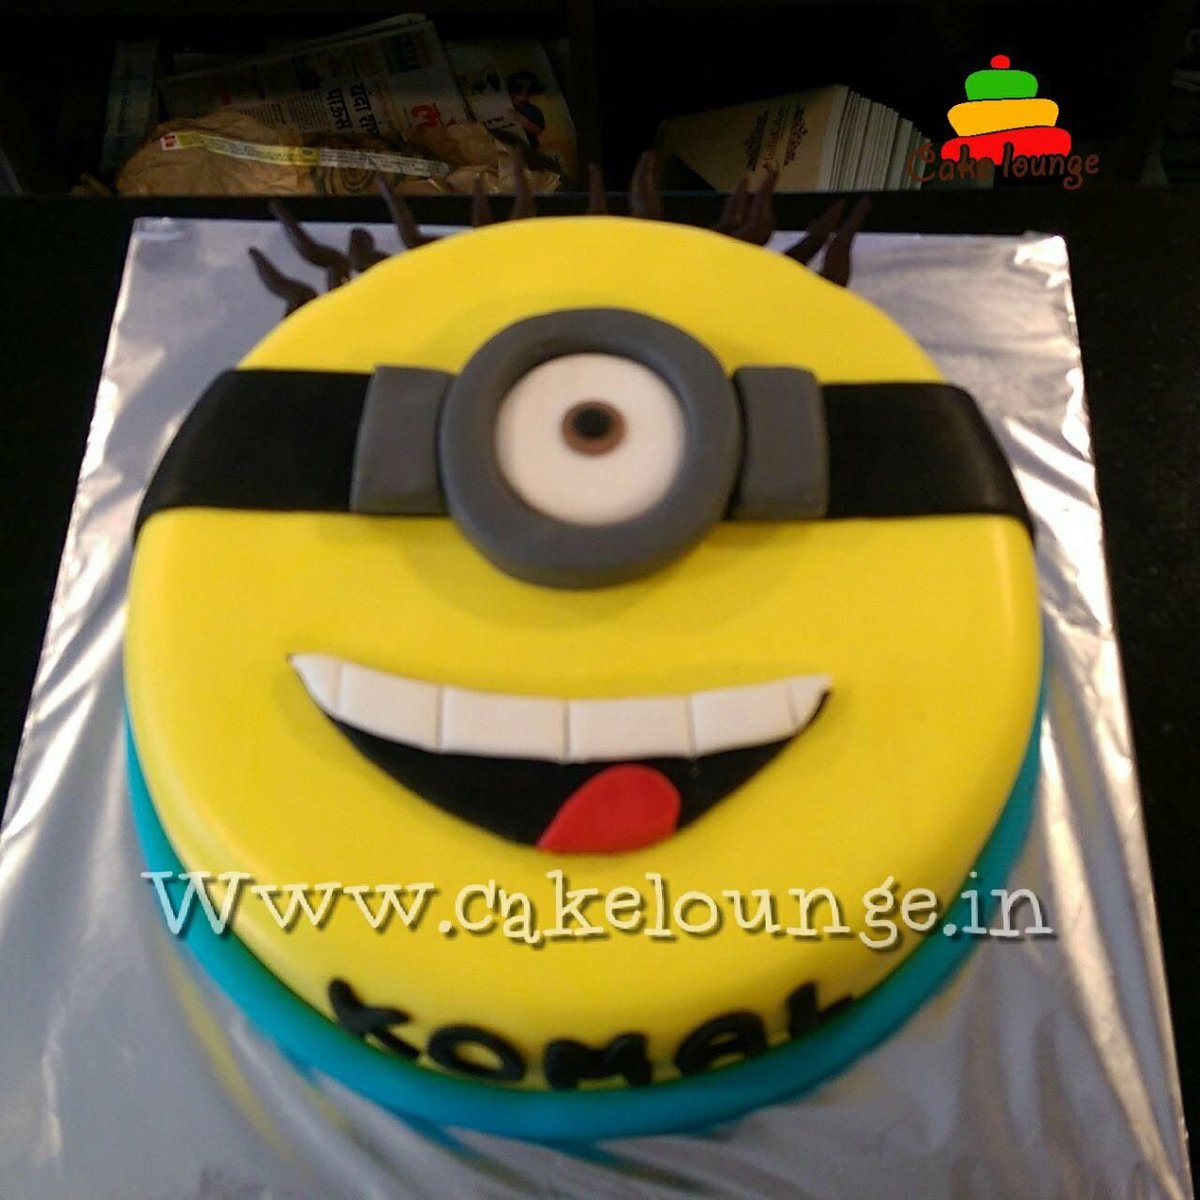 Cakelounge On Twitter Serve Up The Cutest Minion Cake At Your